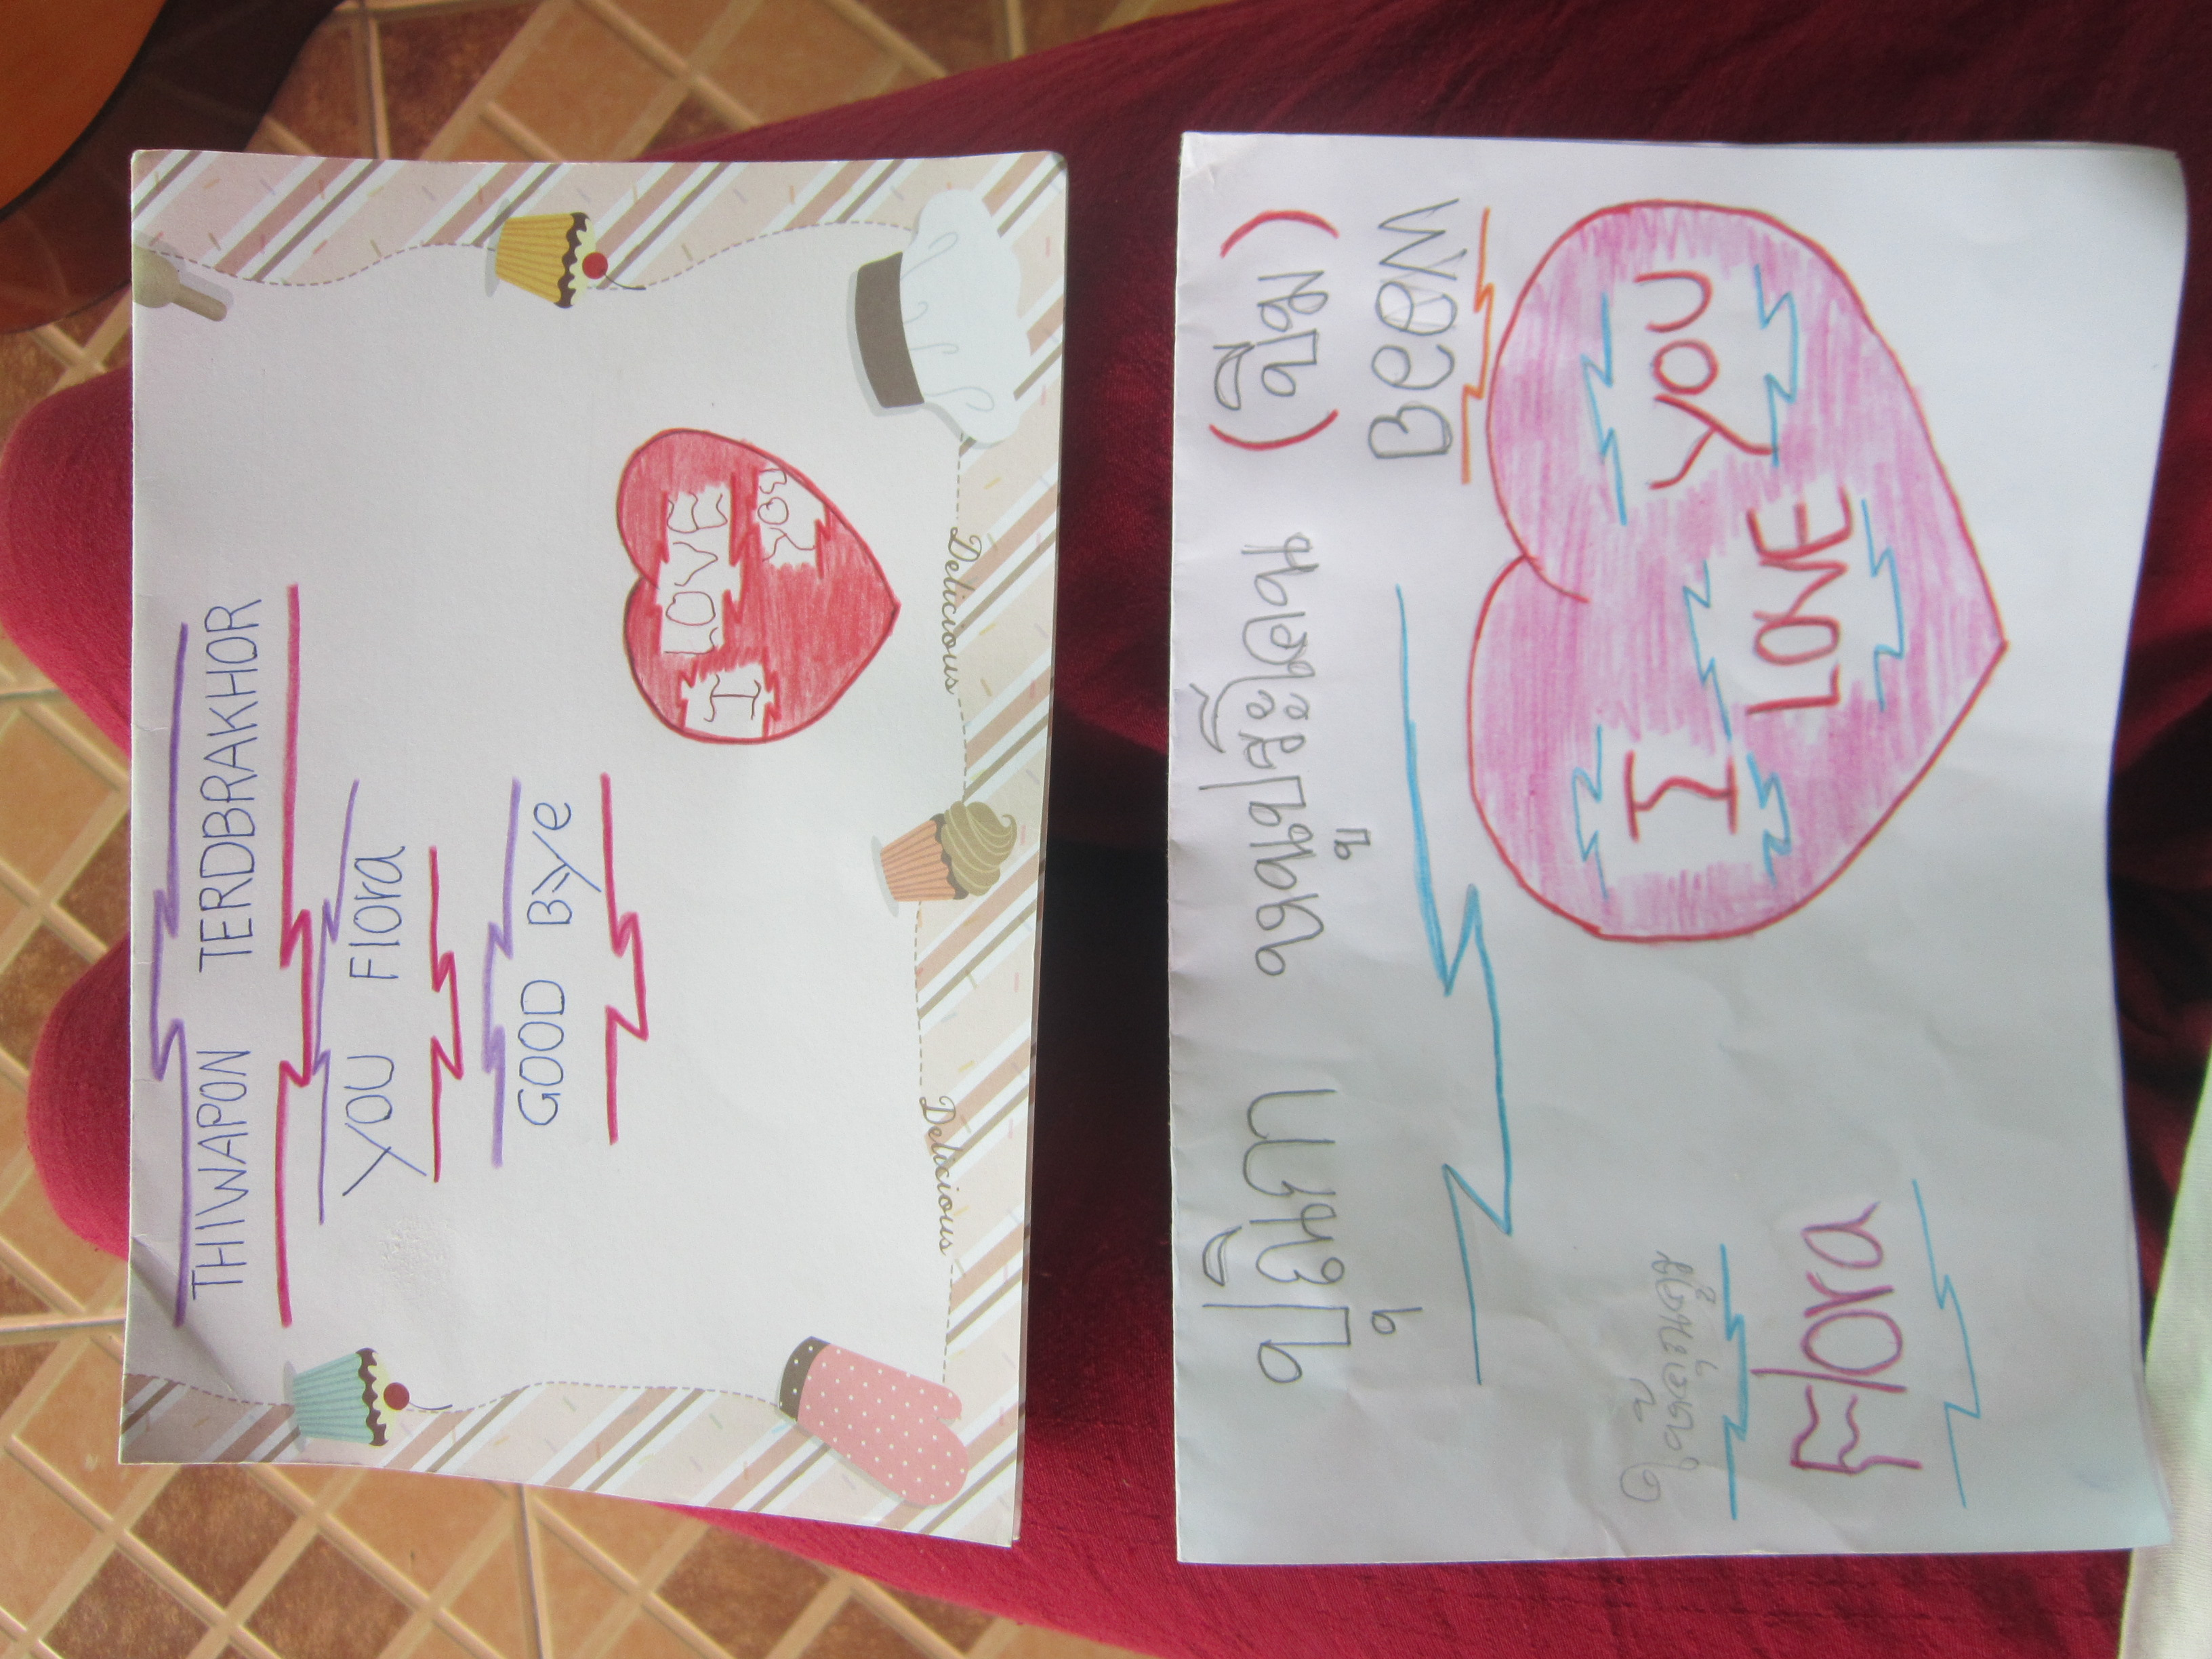 Goodbye cards from Thai school children in Nong Weang, Thailand